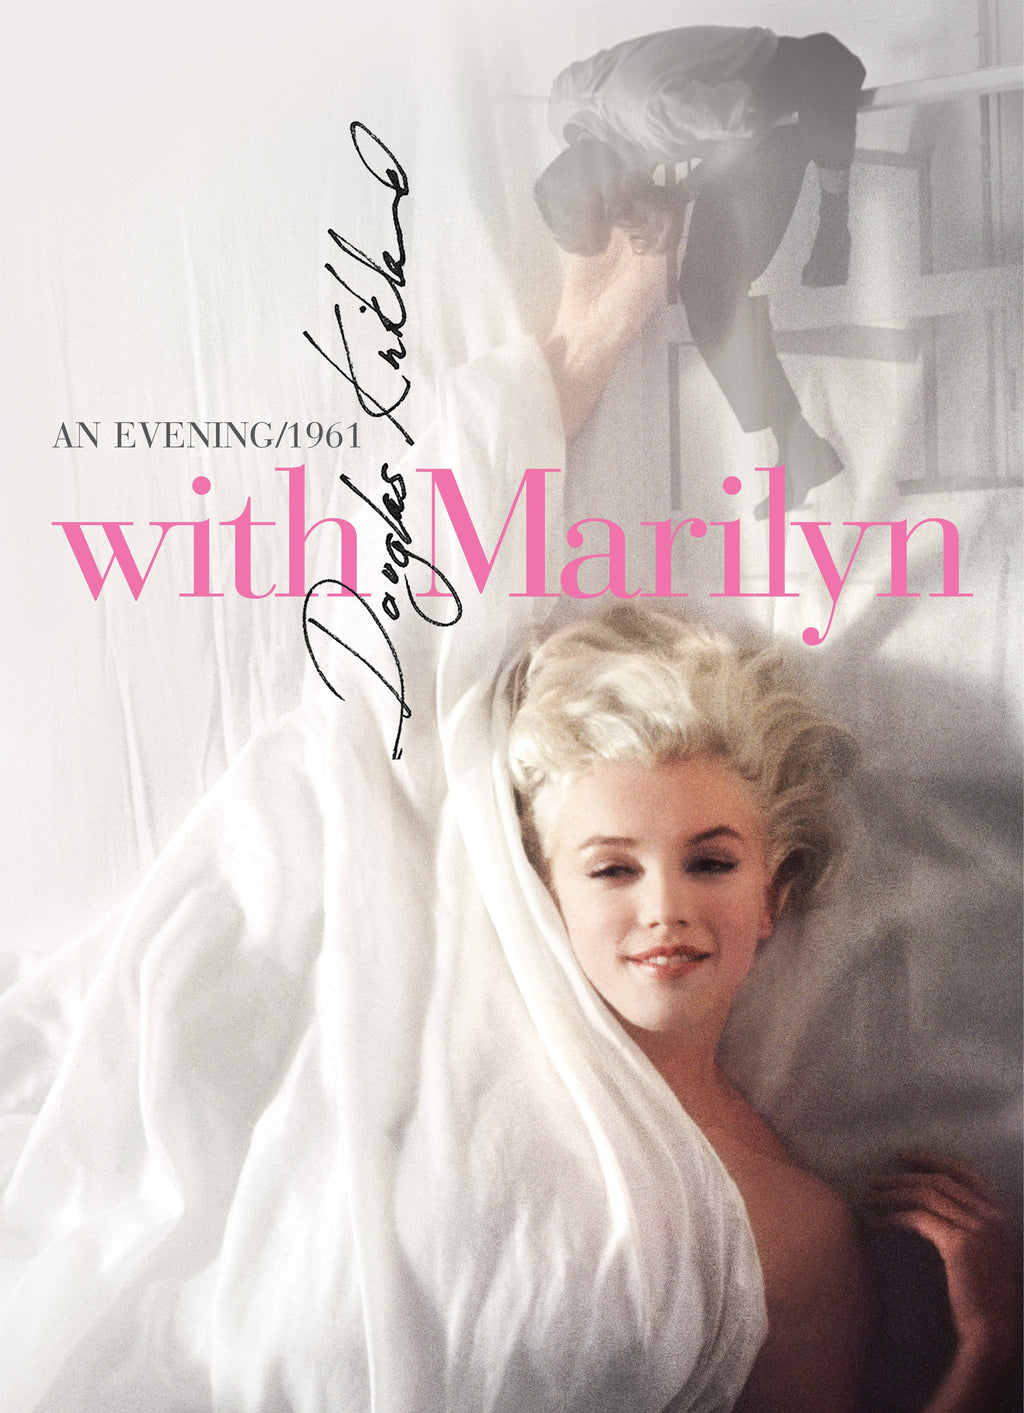 With Marilyn: An Evening/1961